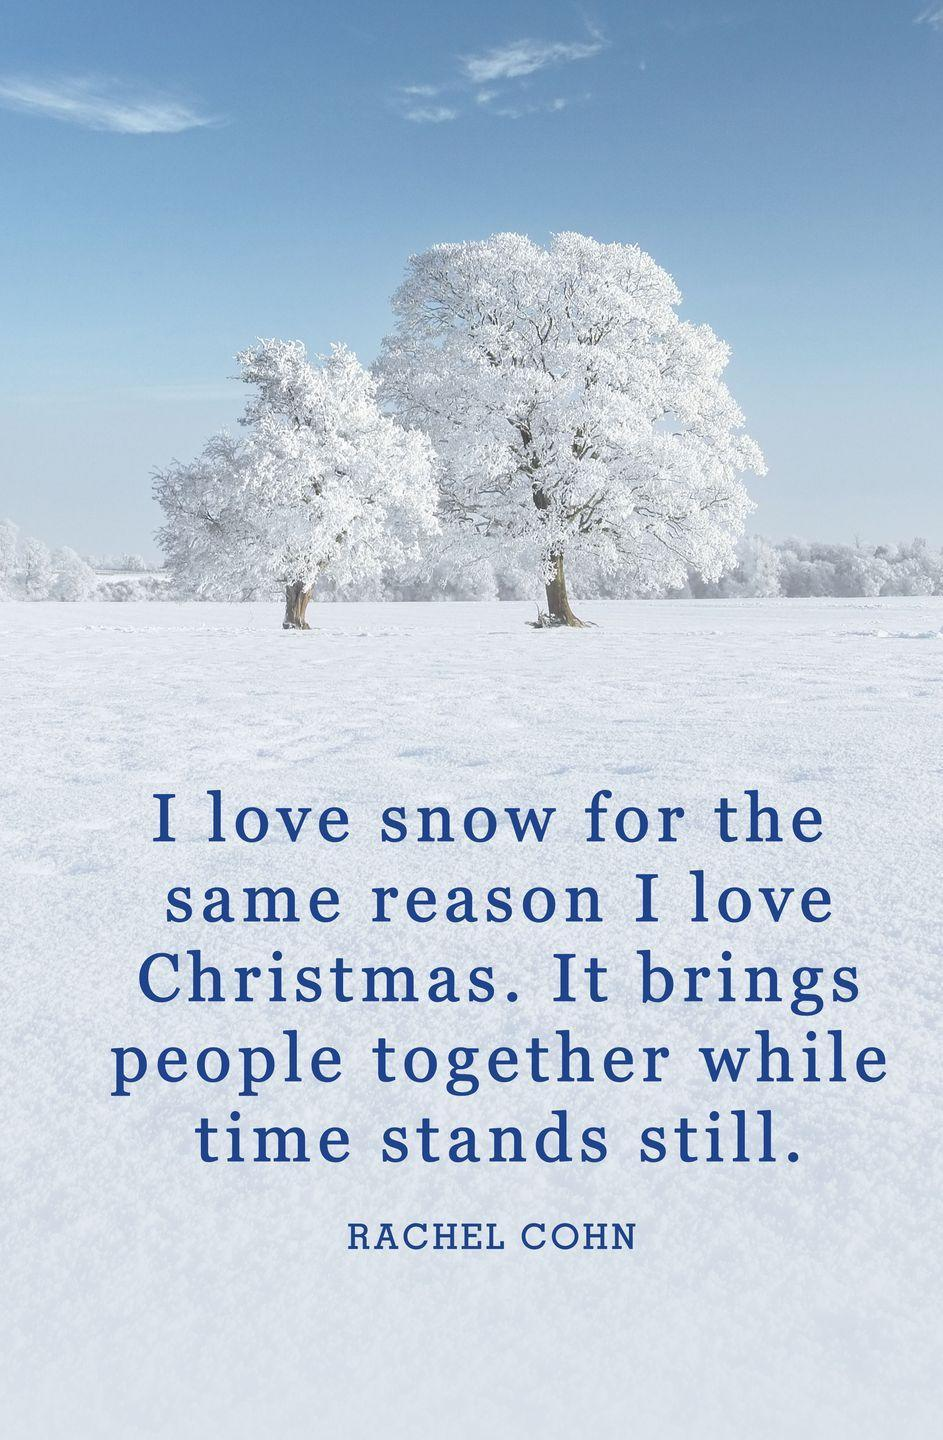 "<p>""I love snow for the same reason I love Christmas. It brings people together while time stands still.""</p>"